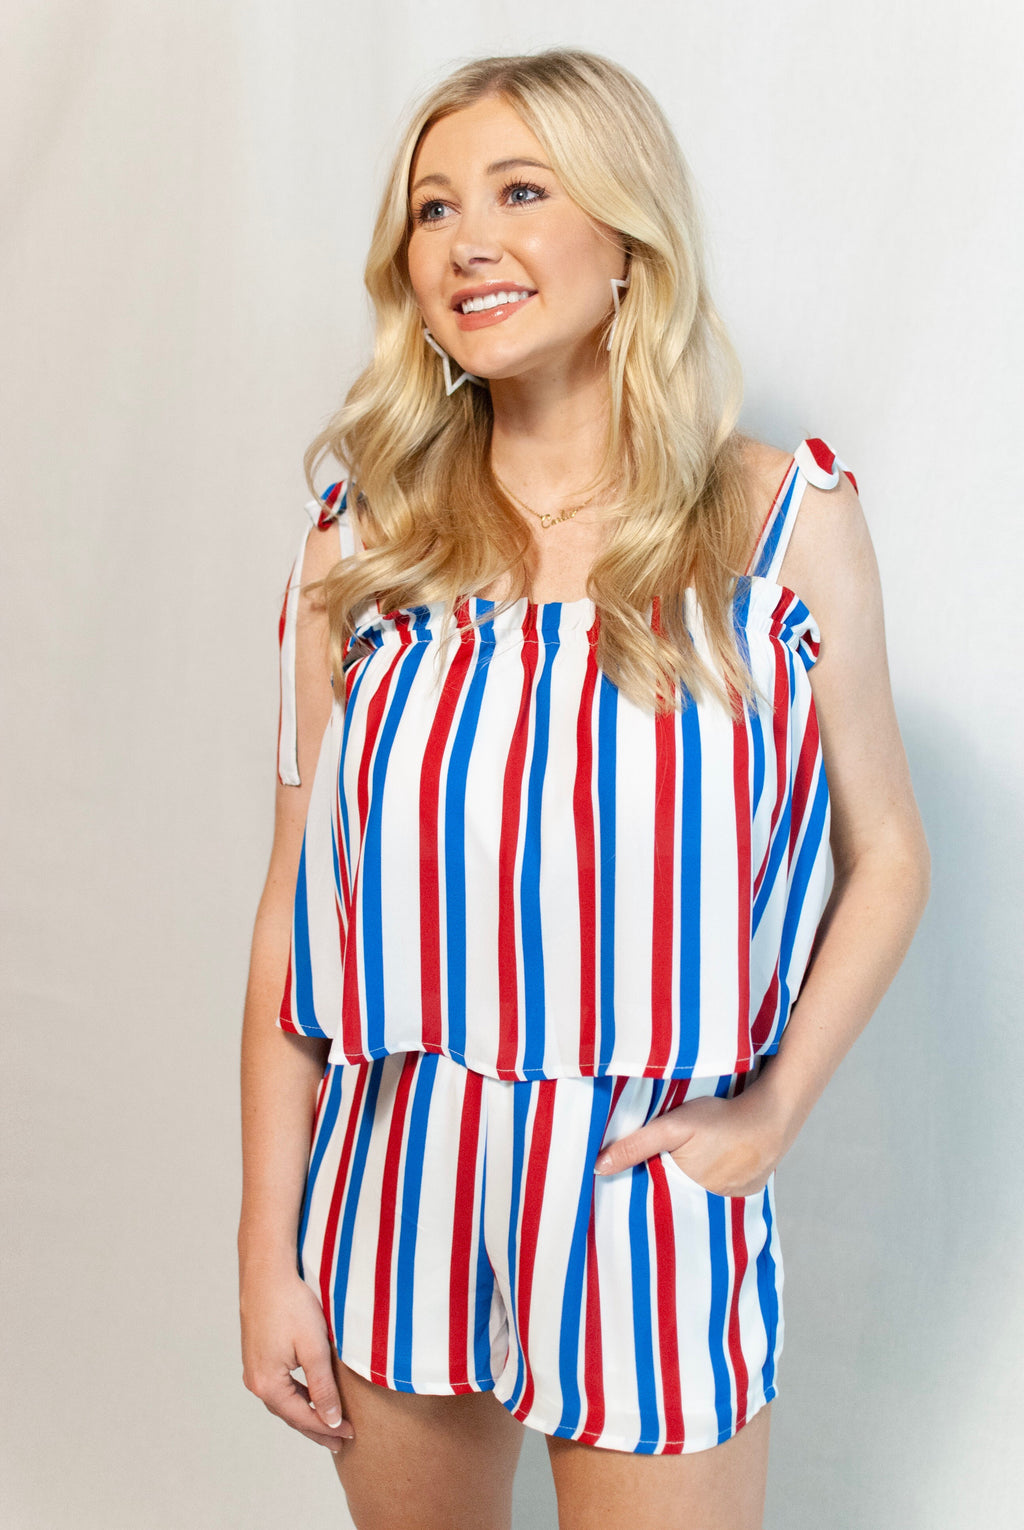 USA striped top - poppy & rose clothing